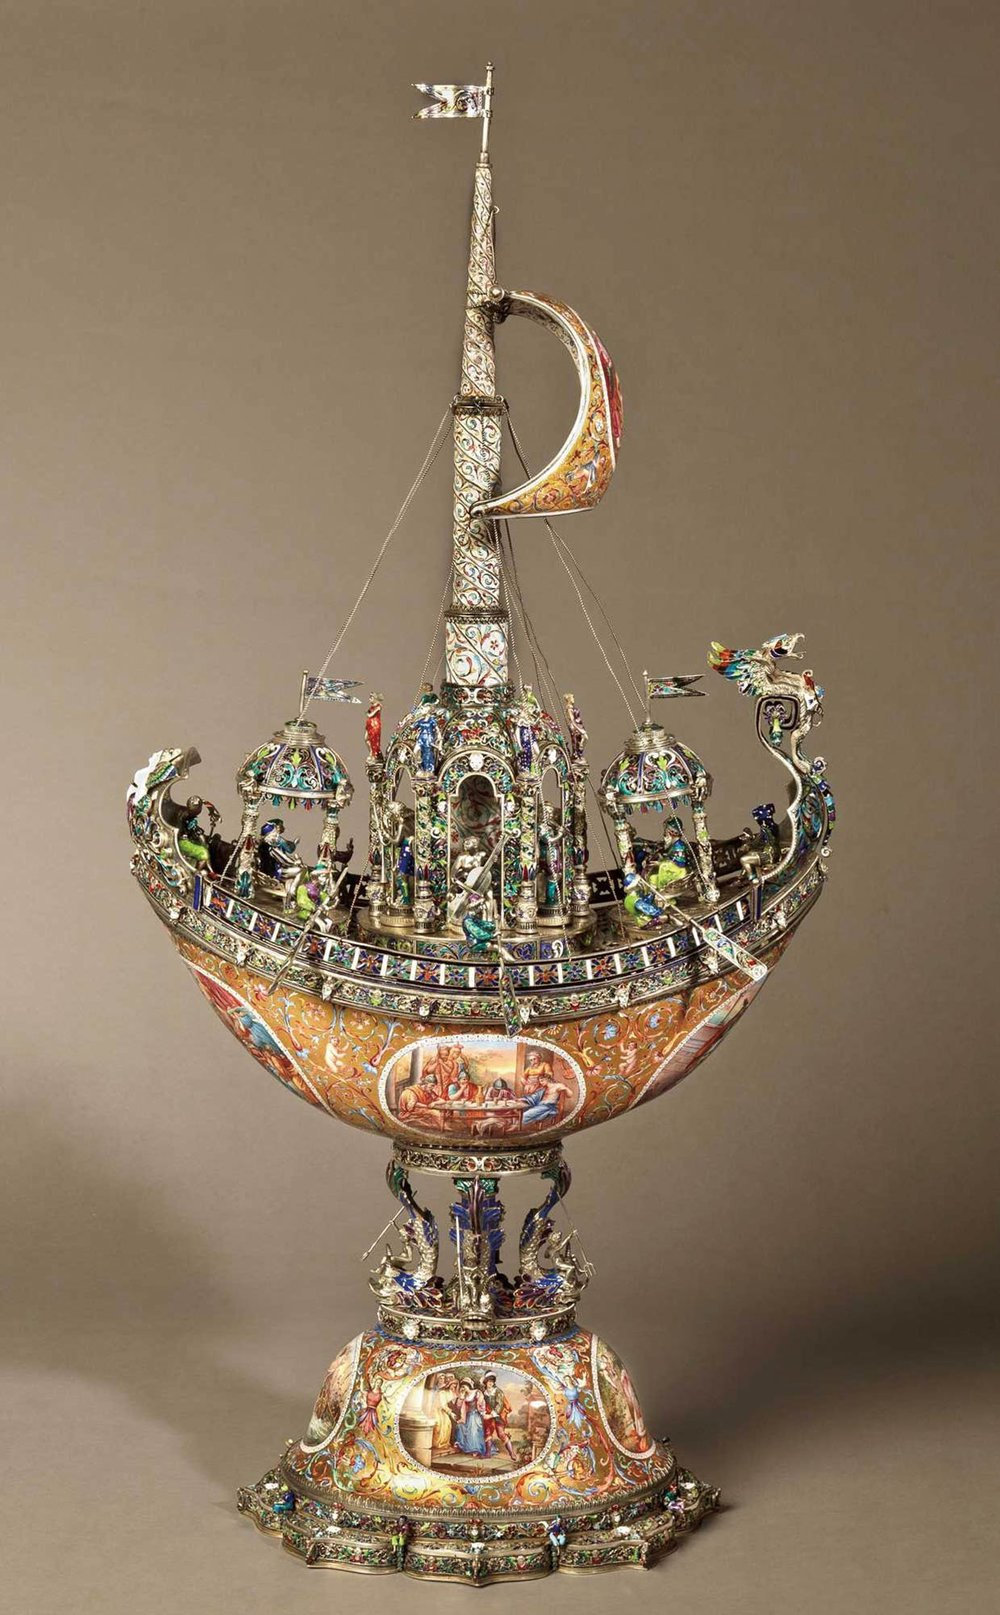 19th-Century Viennese Nef of Silver and Enamel by Hermann Böhm